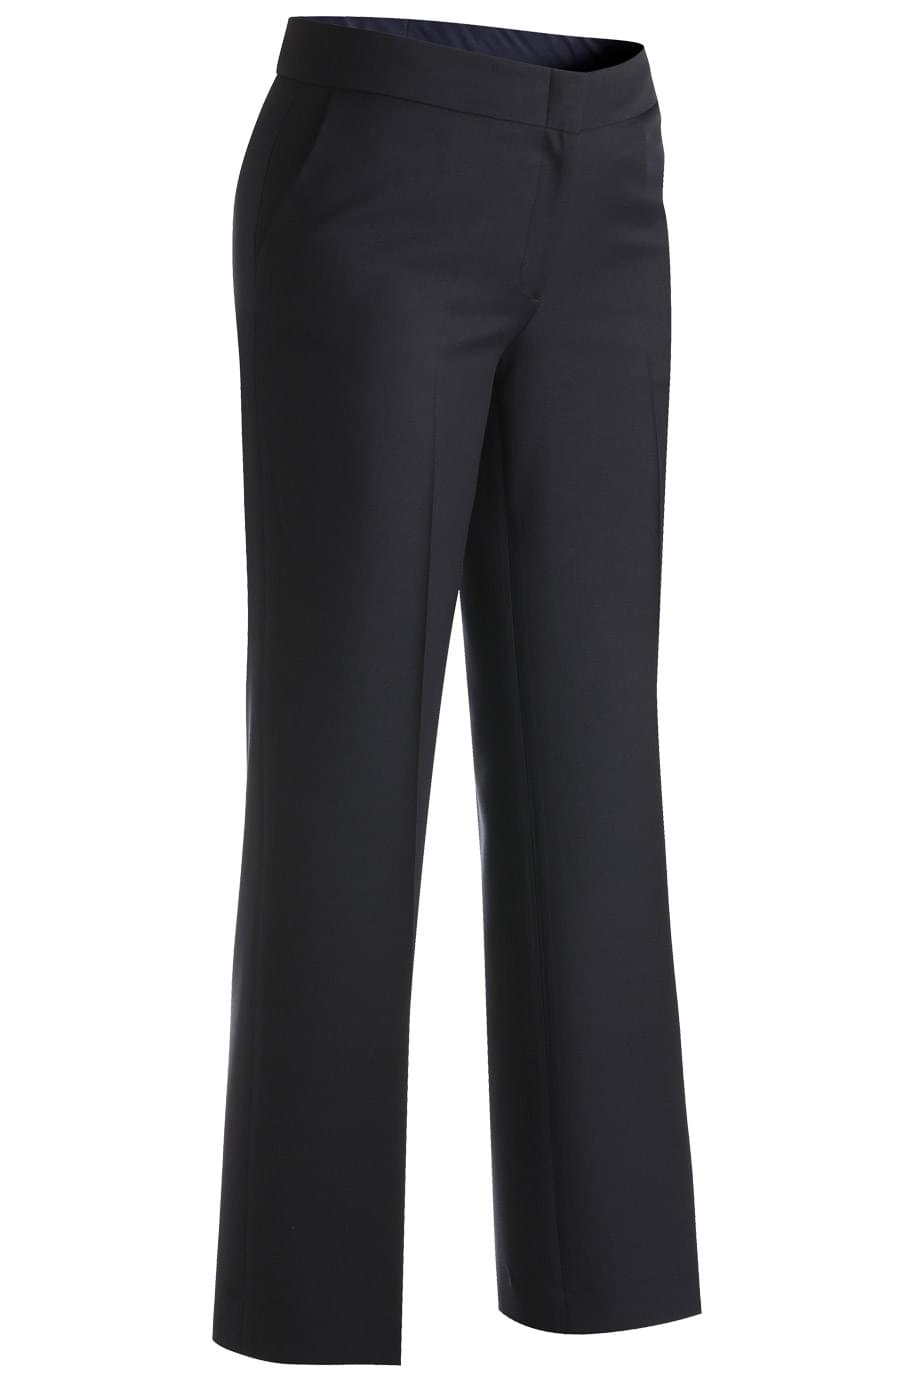 LADIES' FLAT FRONT DRESS PANT WITH SYNERGY FABRIC